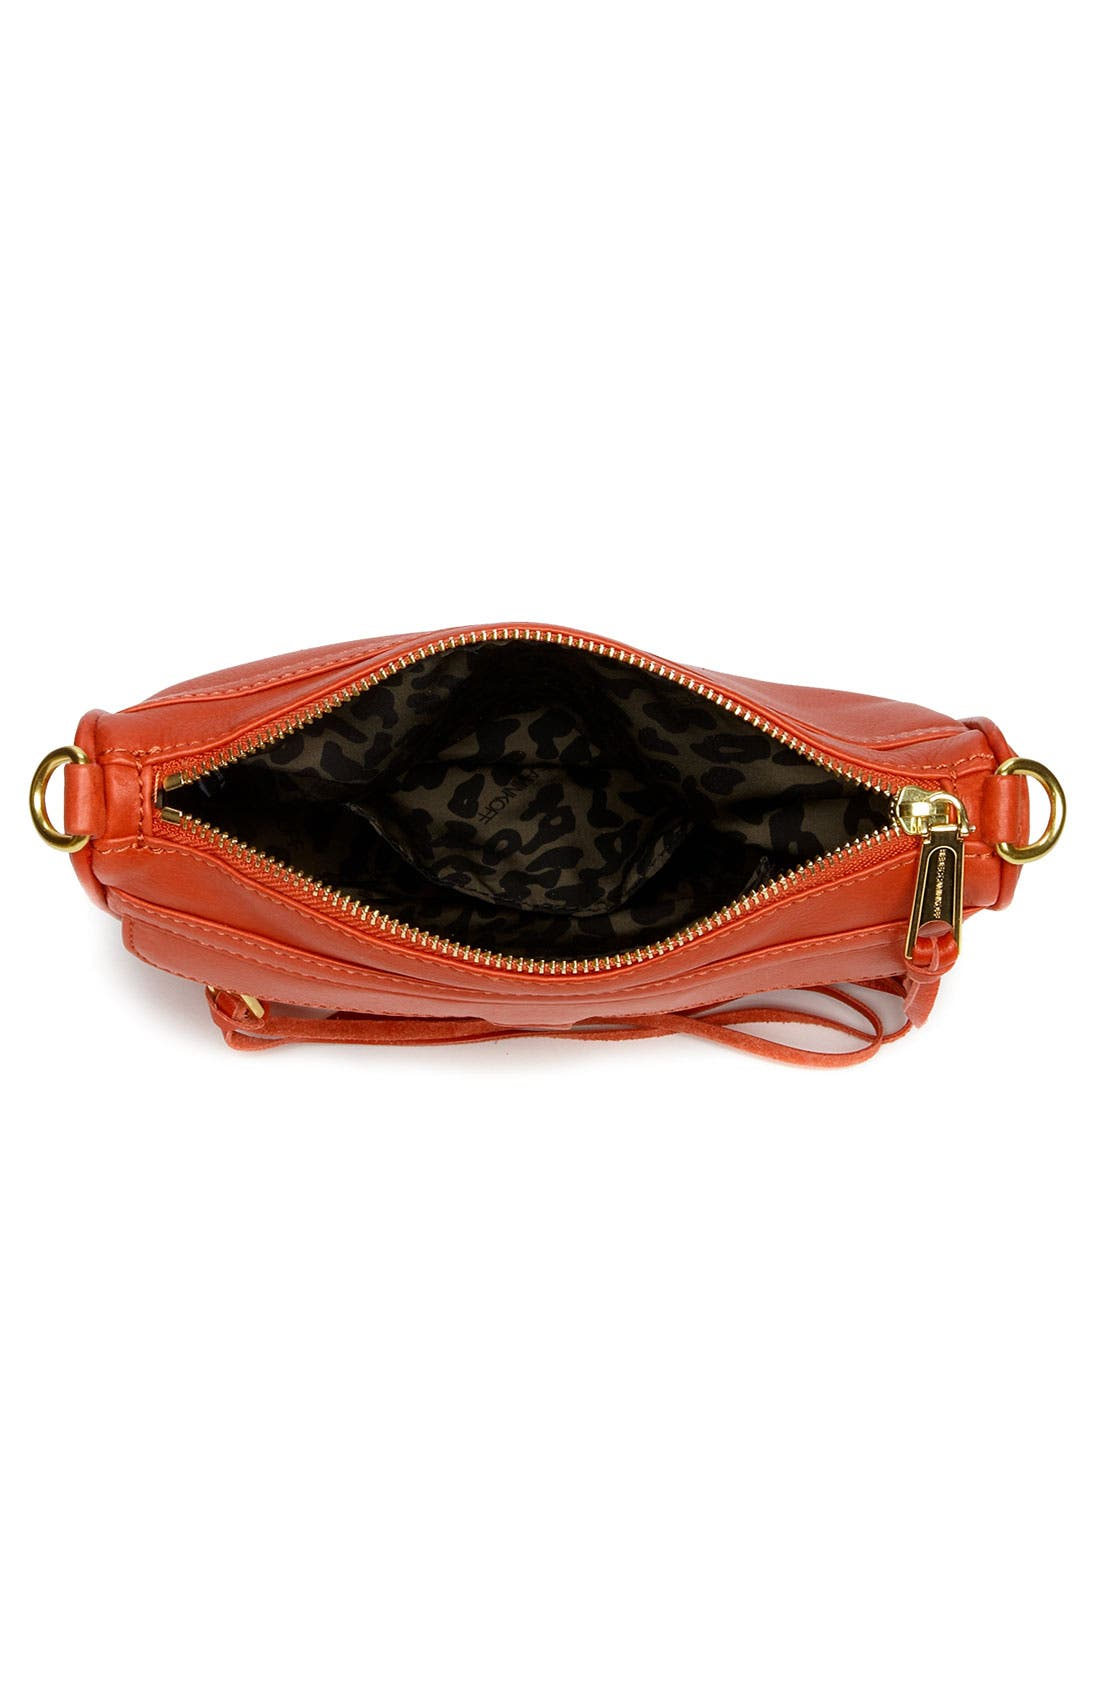 'Mini MAC' Croc Embossed Convertible Crossbody Bag,                             Alternate thumbnail 42, color,